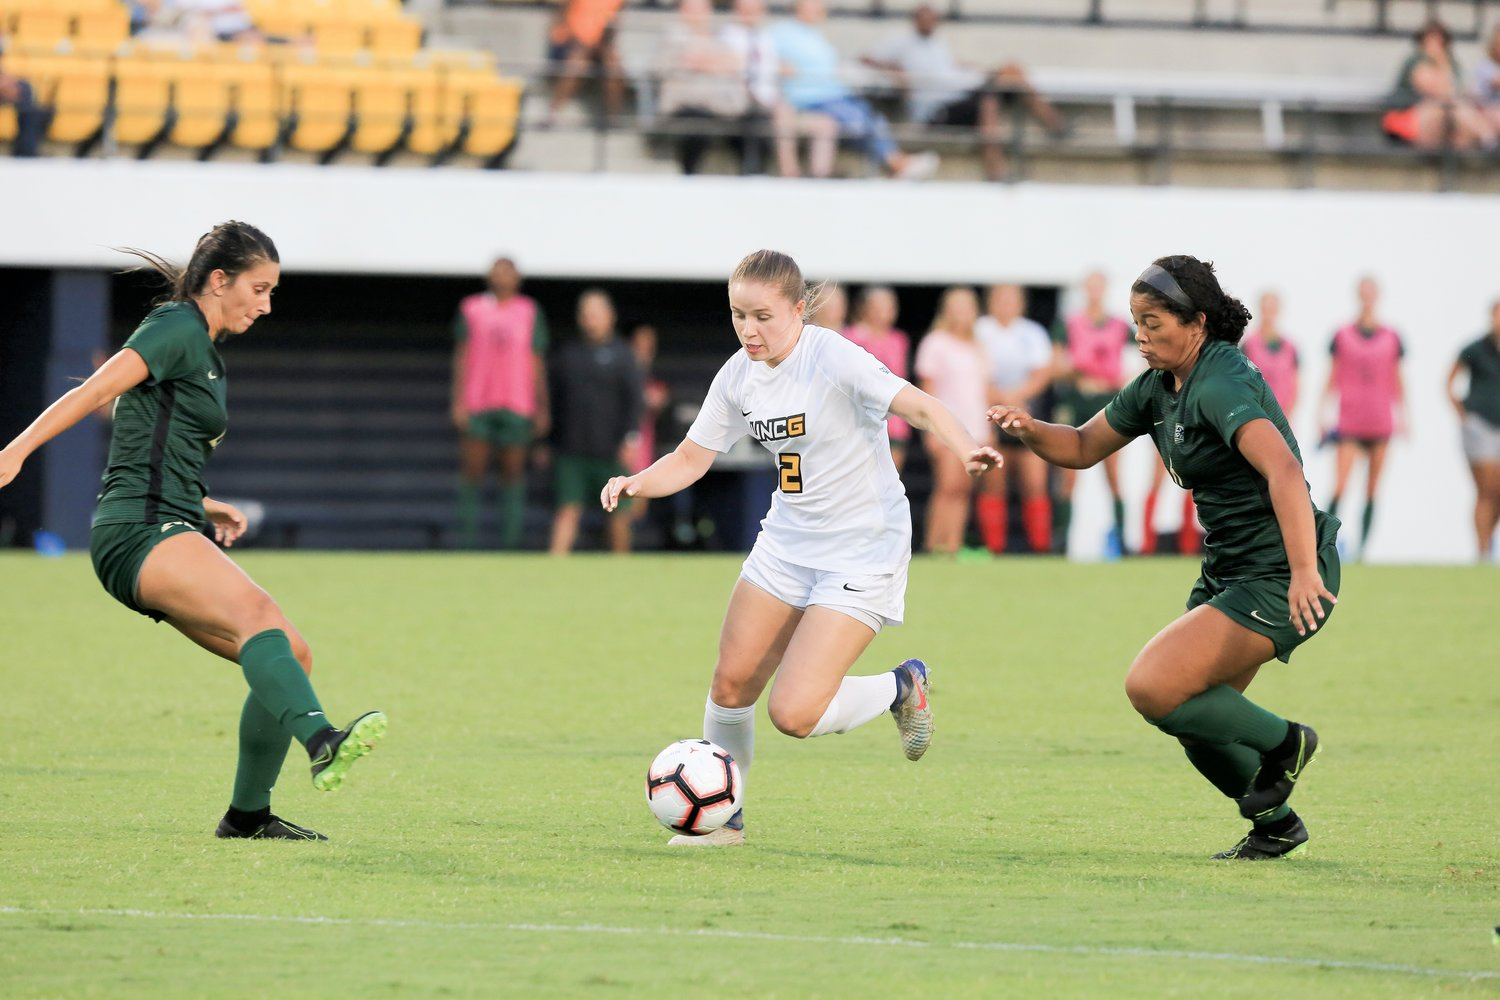 UNCG's Isabel Pearce (2) dribbles through a pair of defenders in an exhibition game against the Charlotte 49ers on August 11, 2019. Pearce is the NCHSAA women's soccer leader in career goals scored (226).